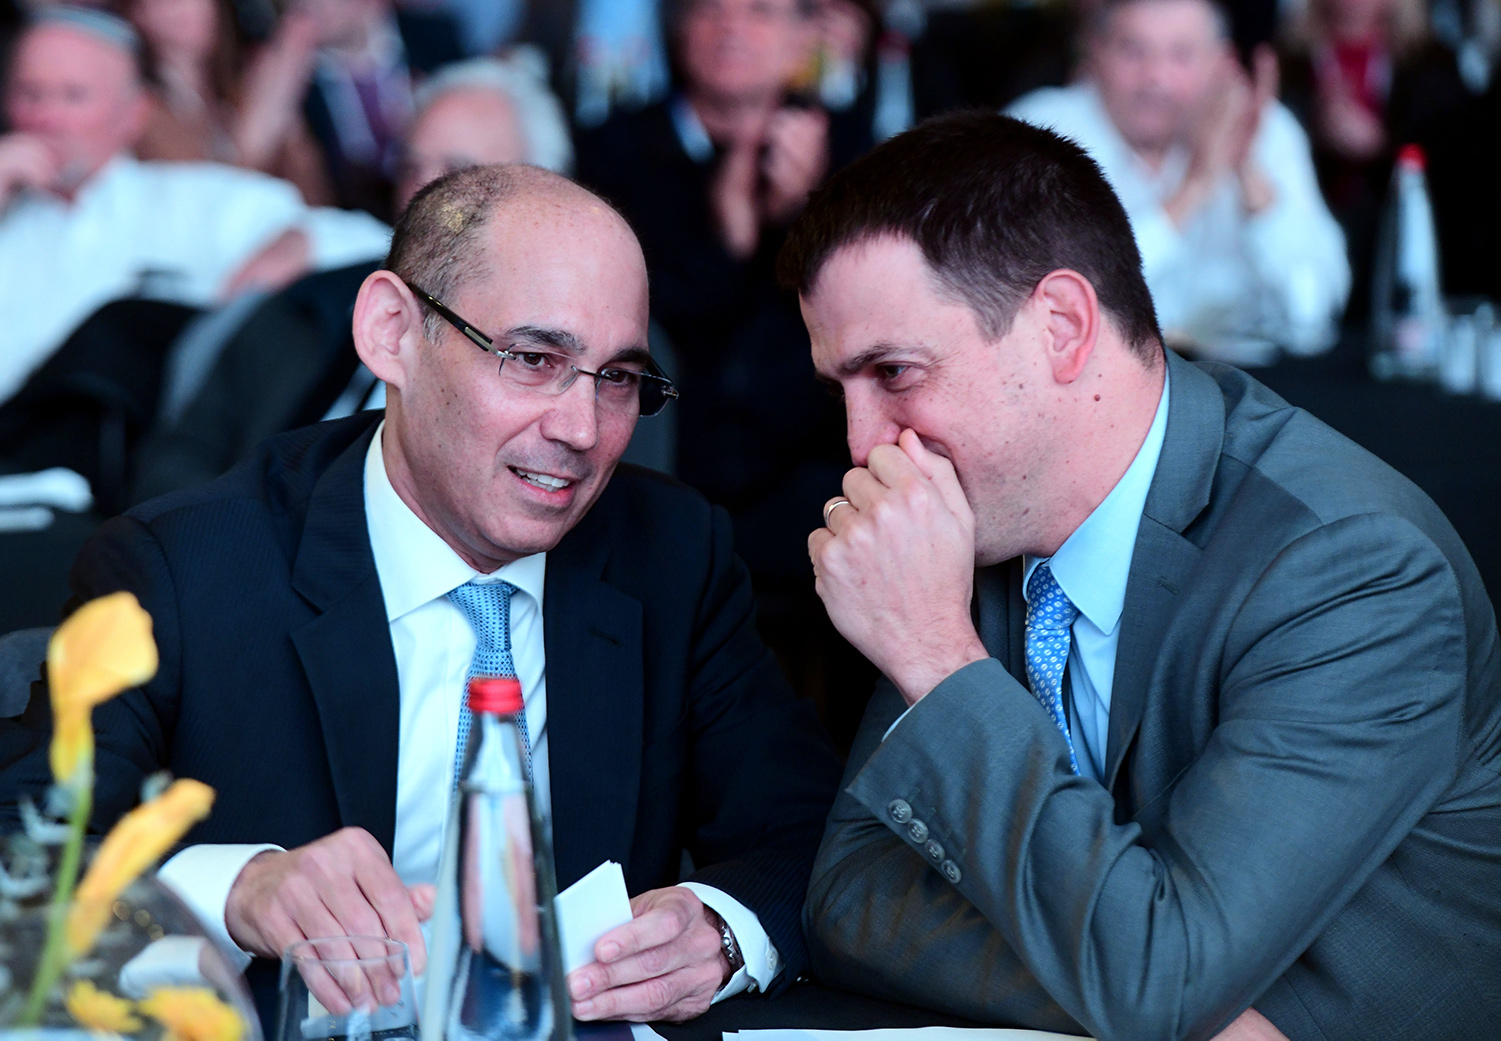 Amir Yaron, governor of the Bank of Israel, with Shaul Meridor, then-head of the Budgets Department, at a conference in Tel Aviv on December 31, 2019. Flash90.